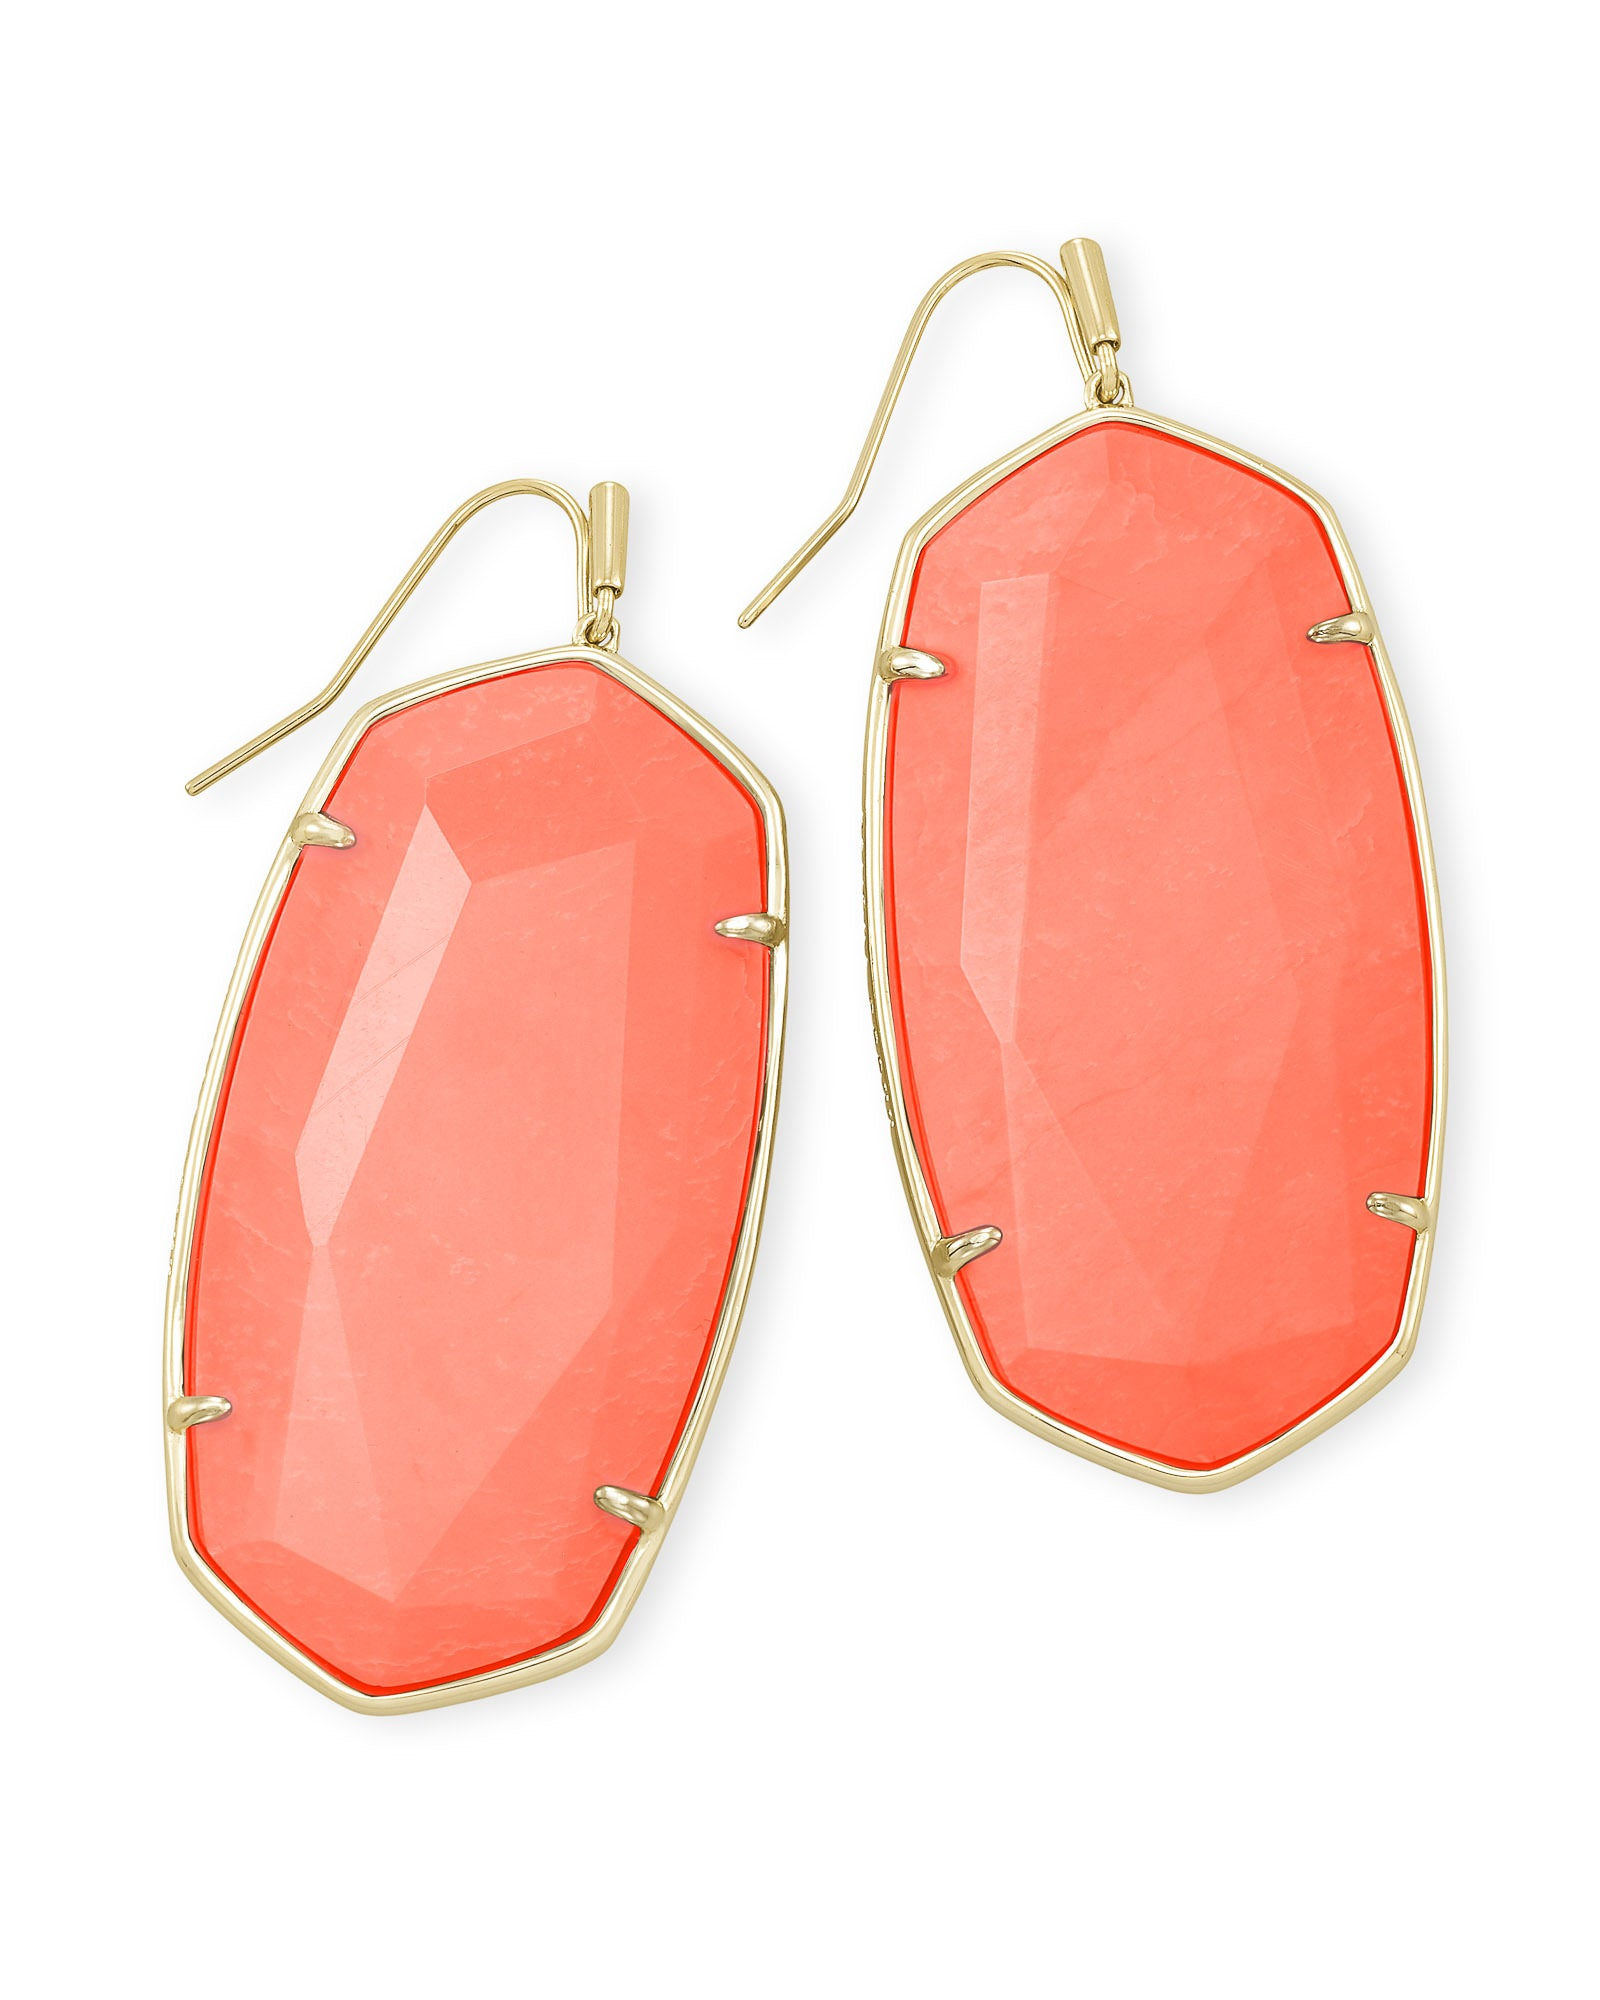 Kendra Scott Faceted Danielle Gold Statement Earrings In Bright Coral Magnesite